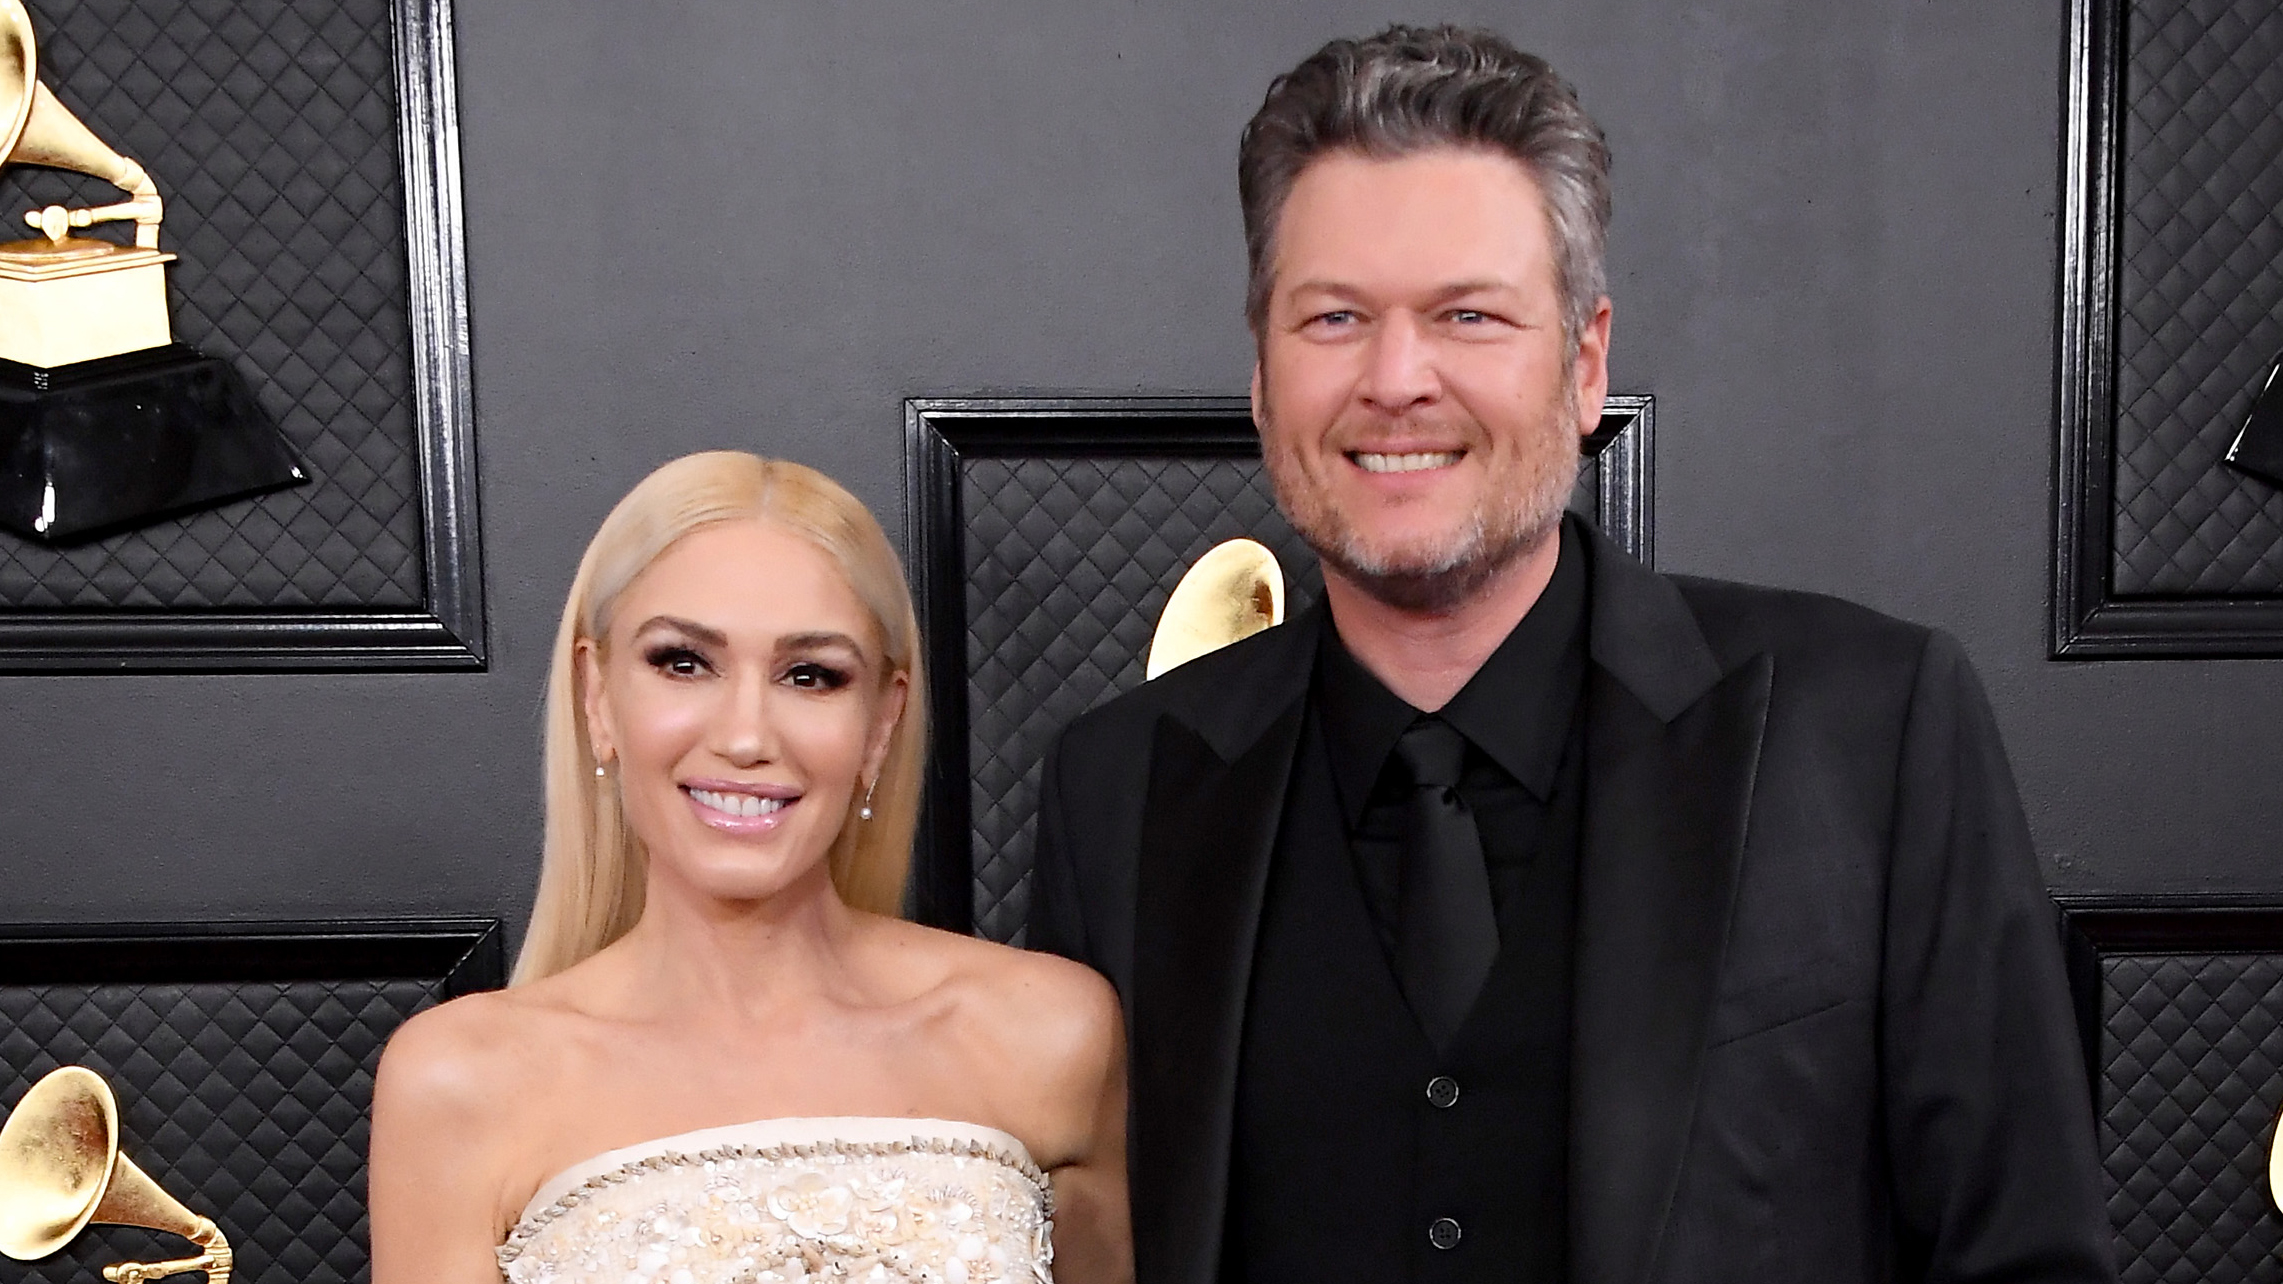 Westlake Legal Group Gwen-stefani-blake-shelton-2020-grammys Gwen Stefani, Blake Shelton sweetly perform 'Happy Anywhere' at their own Bluebird Cafe for the 2020 ACMs Julius Young fox-news/person/gwen-stefani fox-news/person/blake-shelton fox-news/entertainment/music fox-news/entertainment/genres/country fox-news/entertainment/events/acm-awards fox news fnc/entertainment fnc c4d4cfd1-1caf-5c18-a9d1-f20930aff589 article